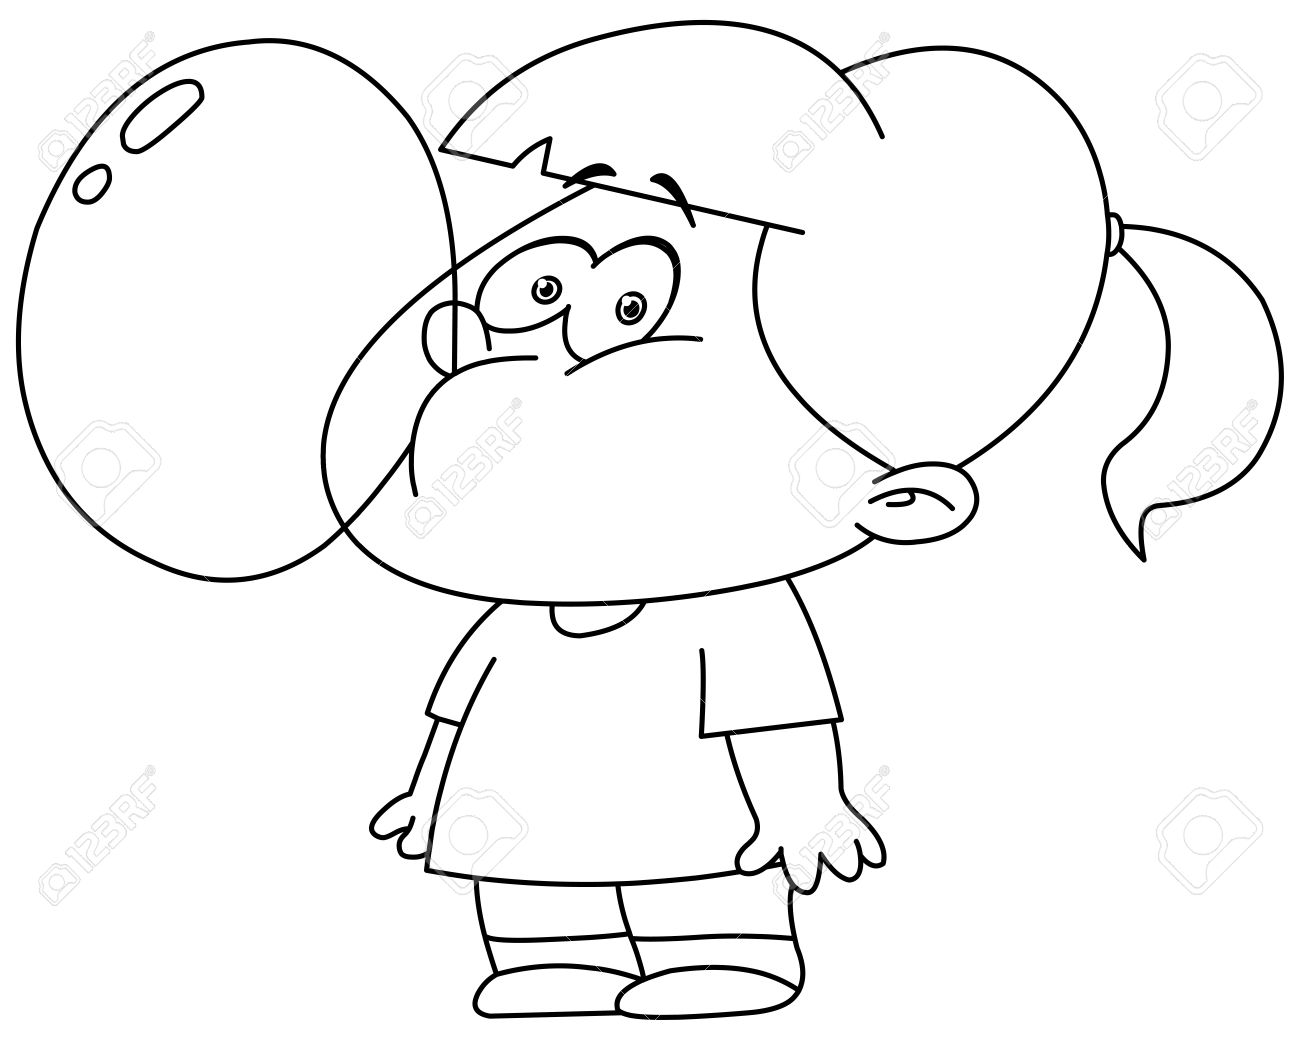 Blowing Bubbles Coloring Page Sketch Coloring Page